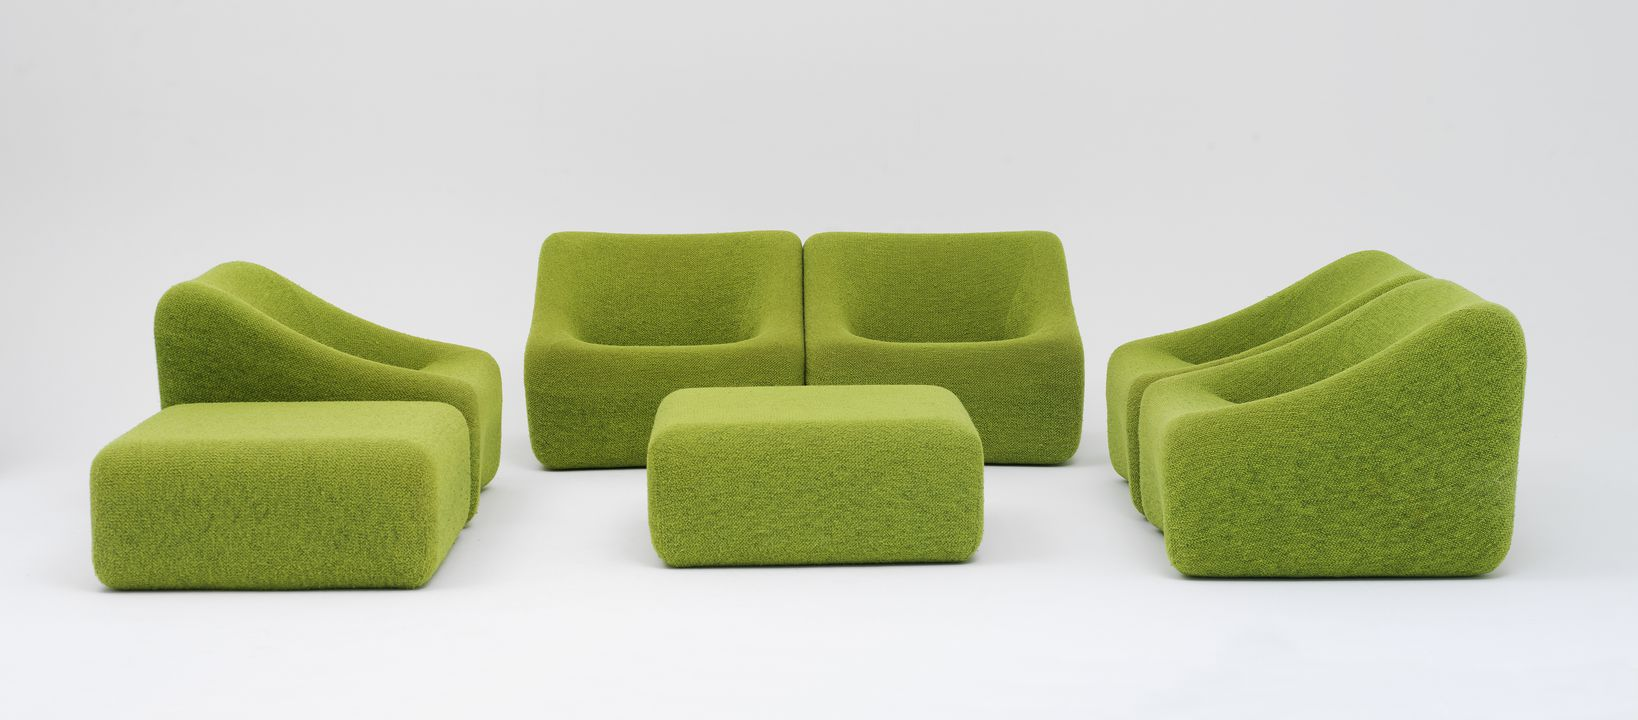 2012/125/1 Lounge suite, 'Numero IV', chairs (5) and ottomans (2), polyurethane foam / ABS plastic / wool, designed by Grant and Mary Featherston, made by Uniroyal Pty Ltd, Melbourne, Victoria, Australia, 1973-1974. Click to enlarge.